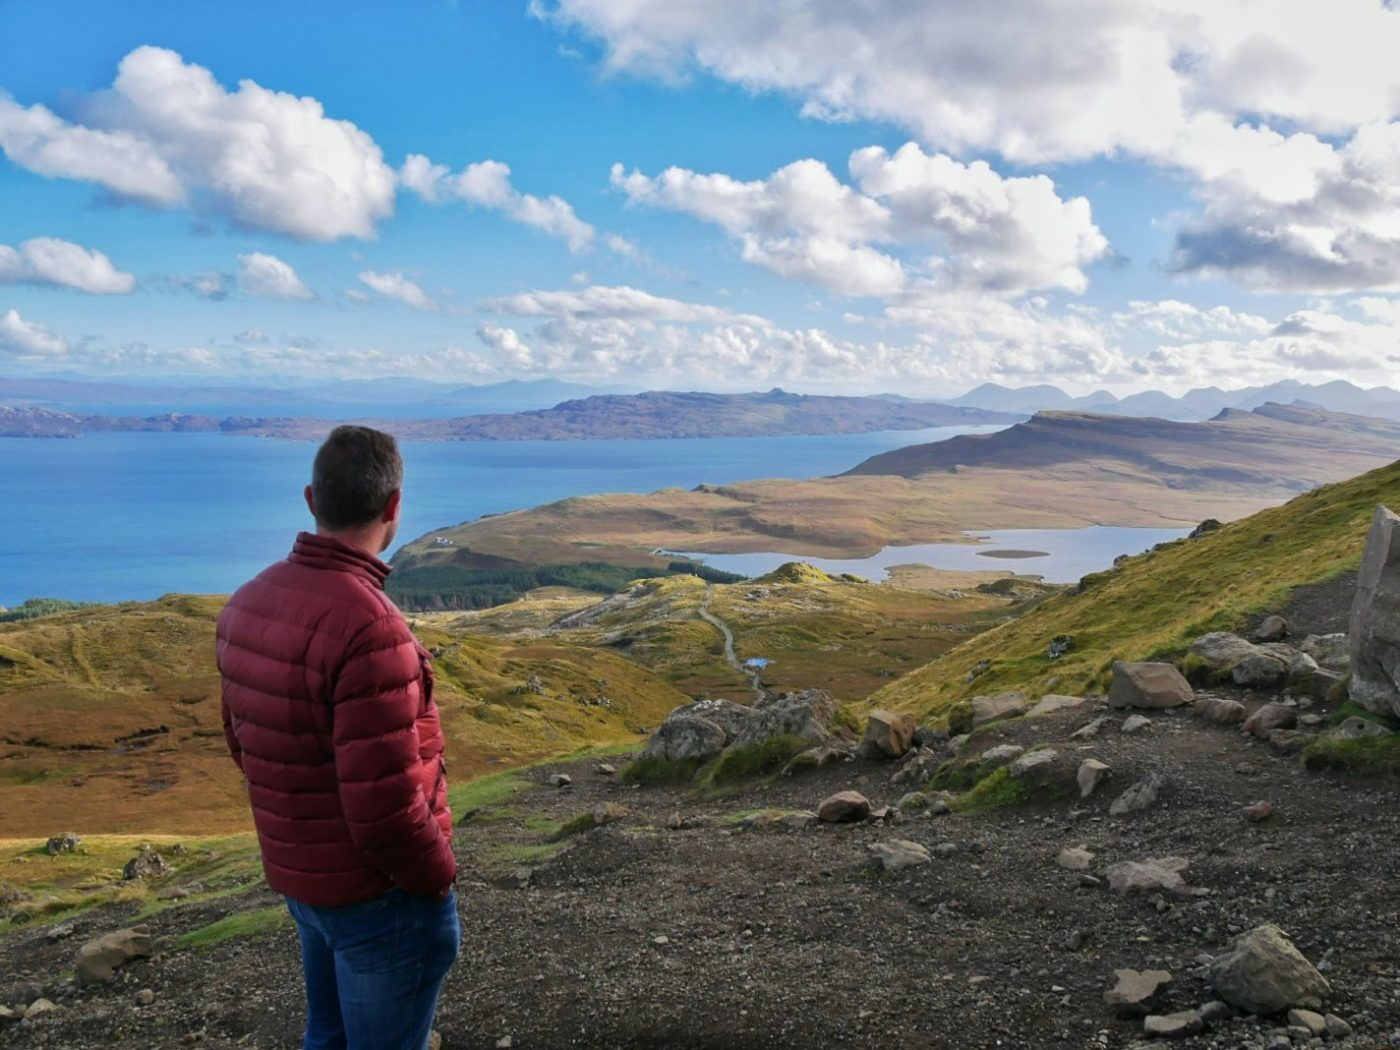 On the top of The Storr - Isle of Skye